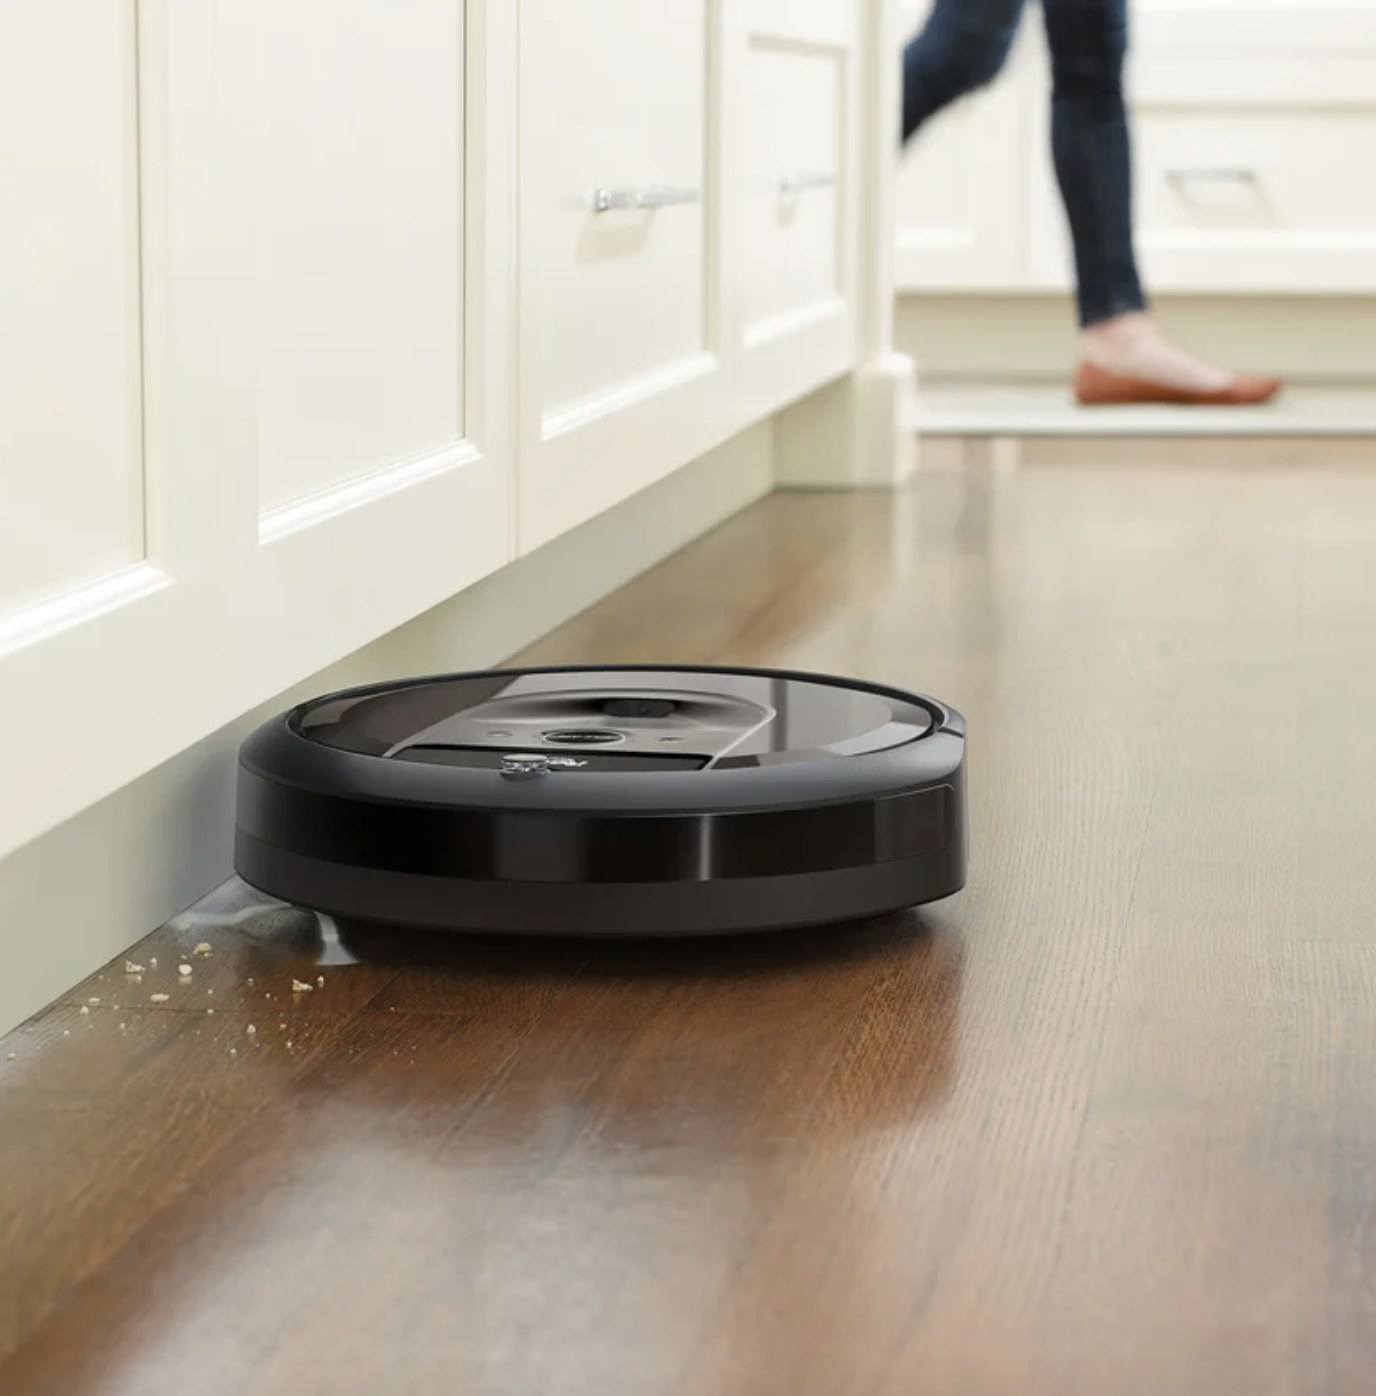 the robot vacuum cleaning up crumbs on the floor